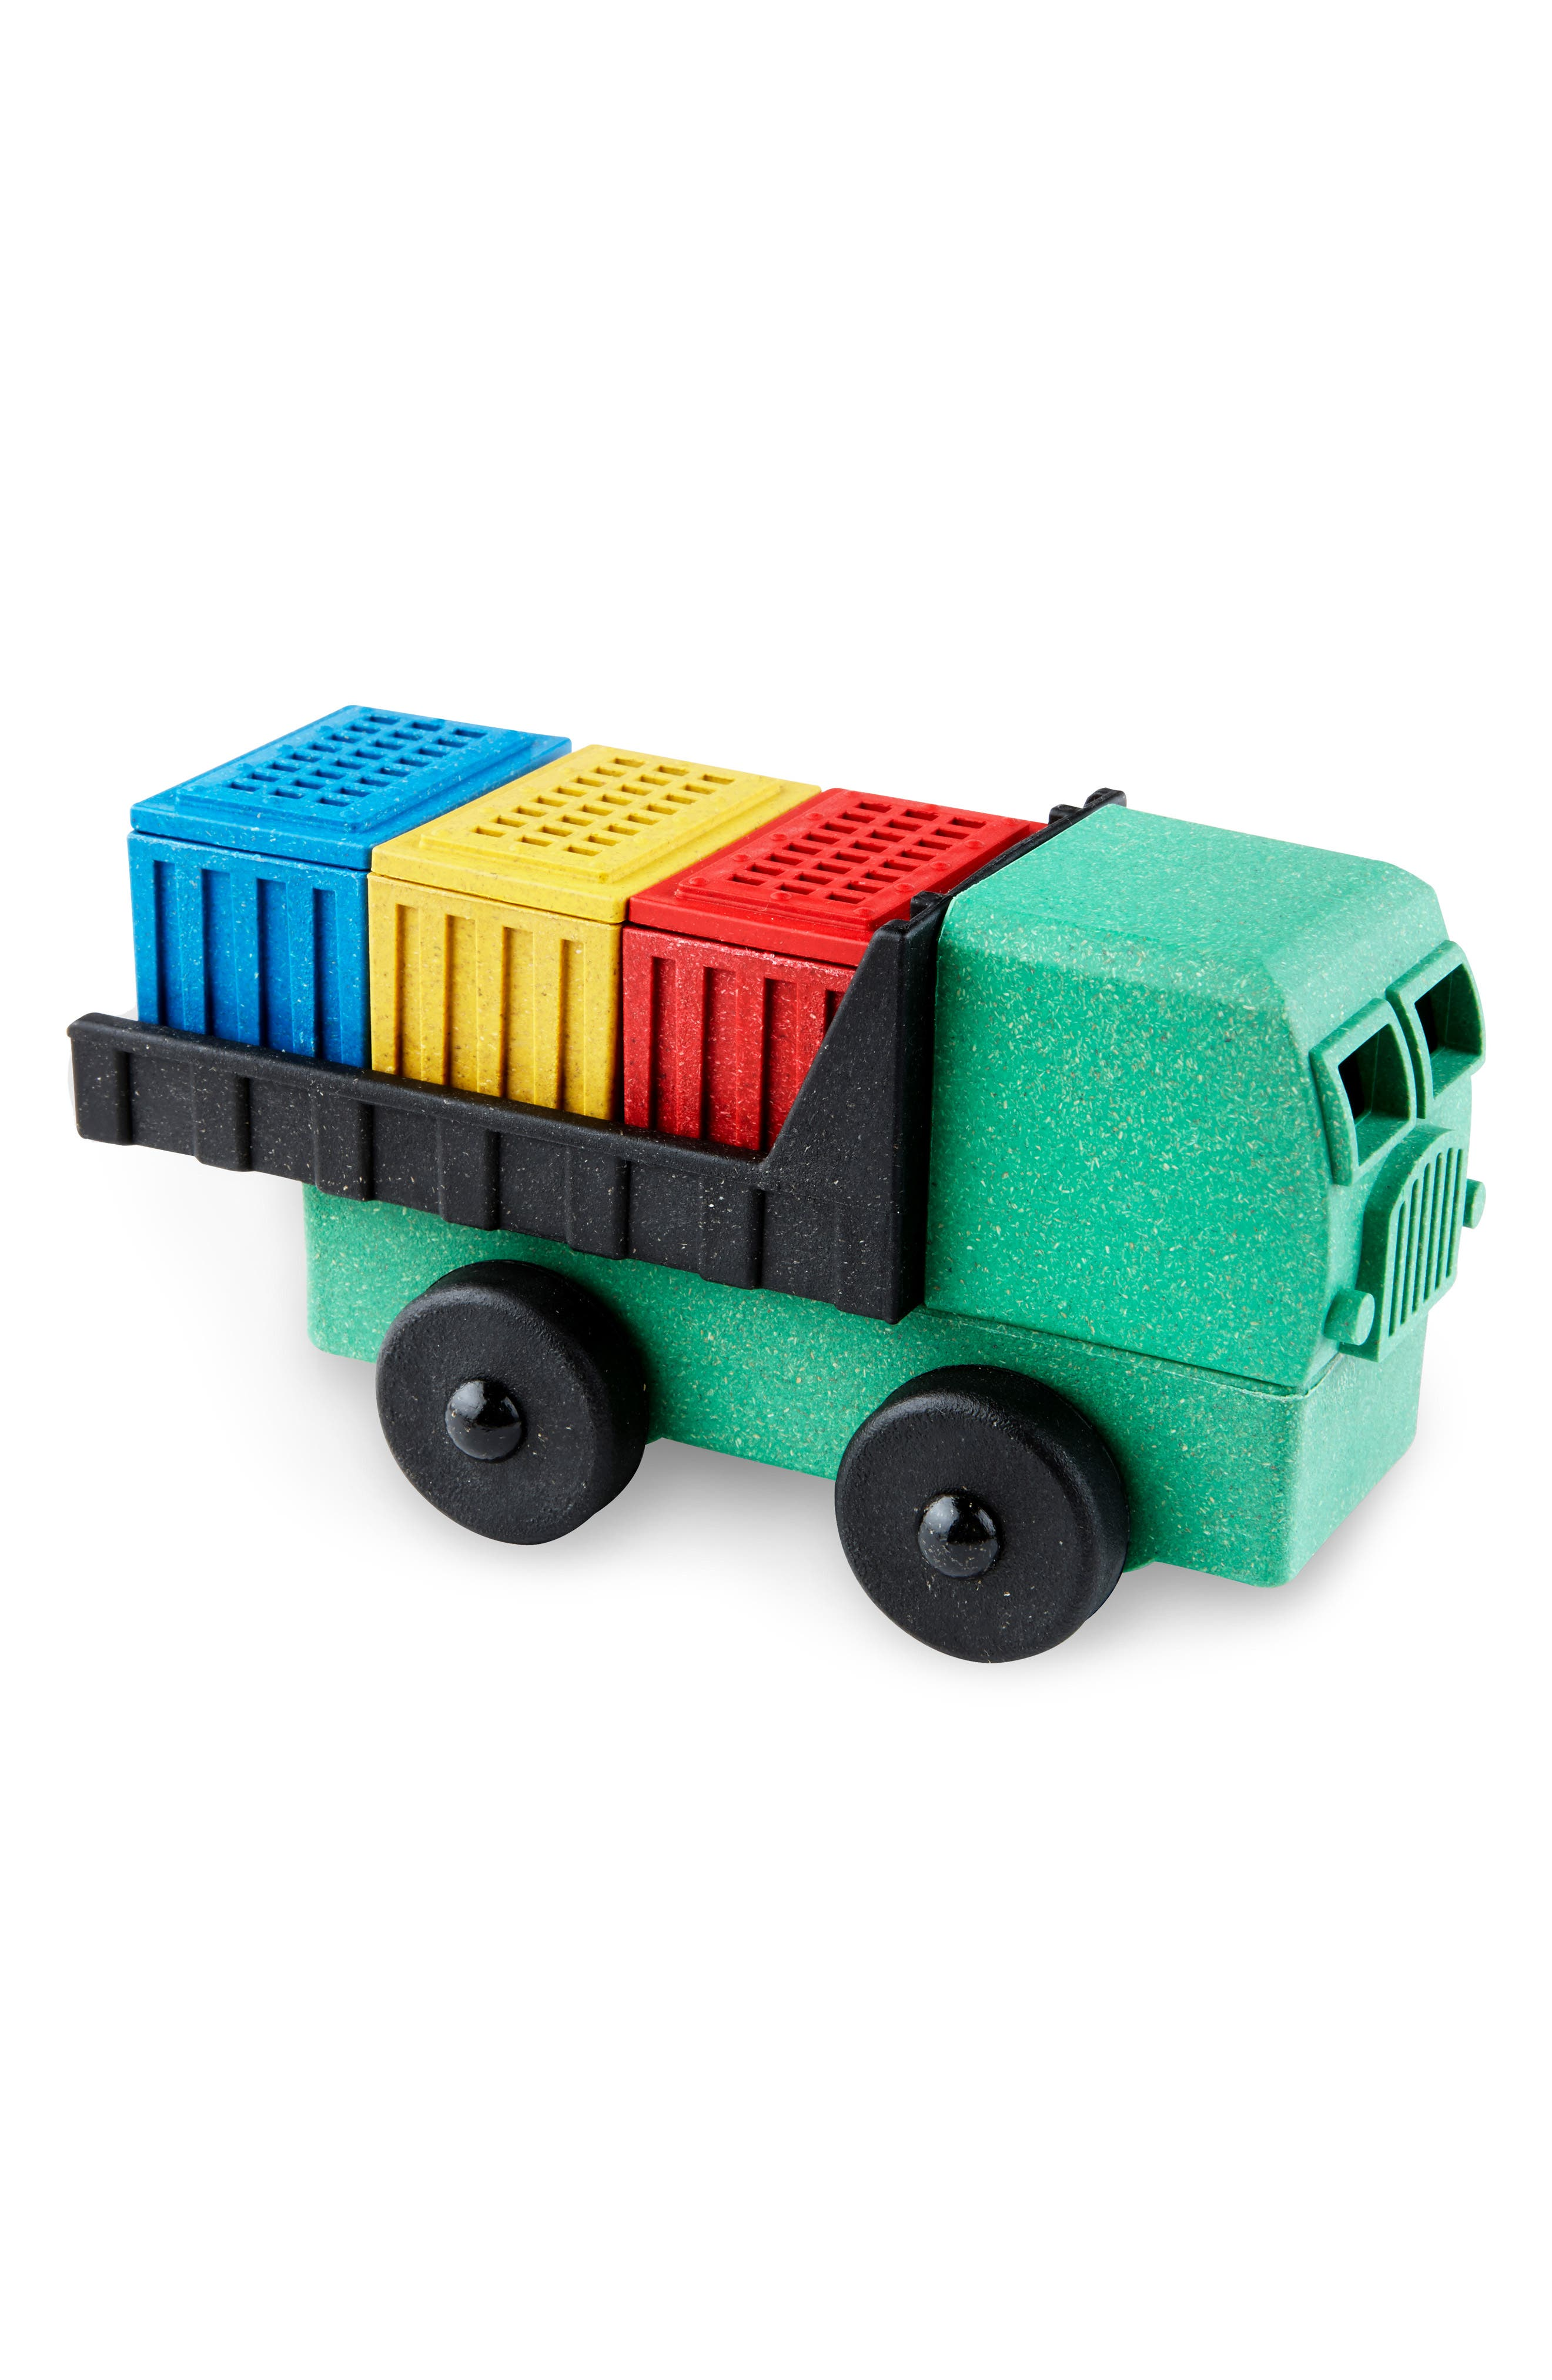 Boys Lukes Toy Factory Educational 9Piece Puzzle Cargo Truck Toy